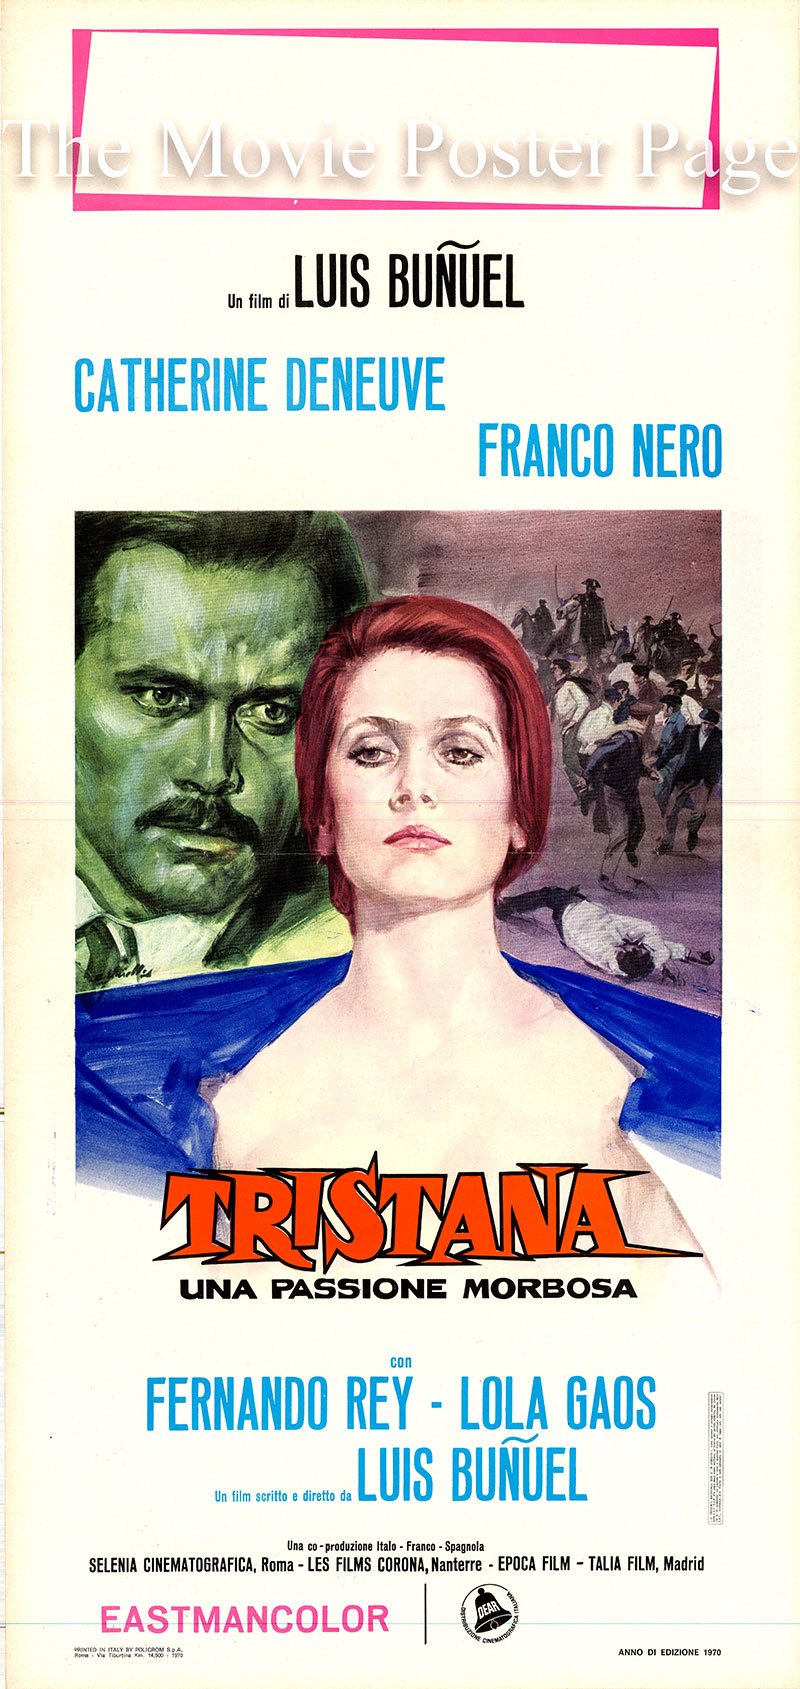 Pictured is an Italian locandina poster for the 1970 Luis Buñuel film Tristana starring Catherine Deneuve as Tristana.